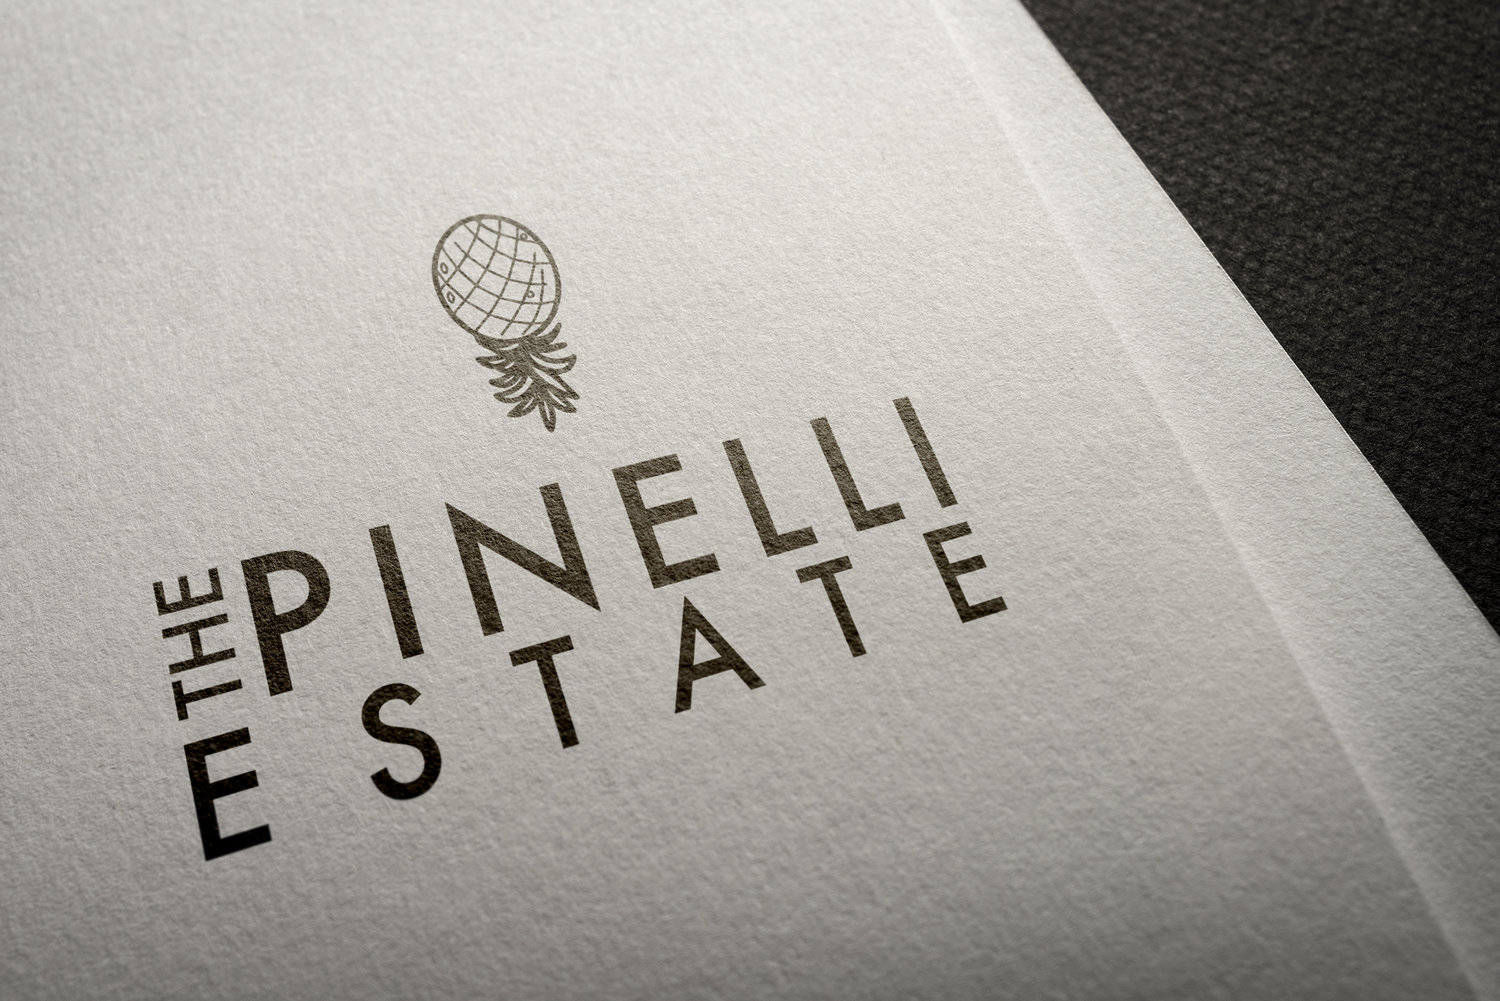 The Pinelli Estate logo